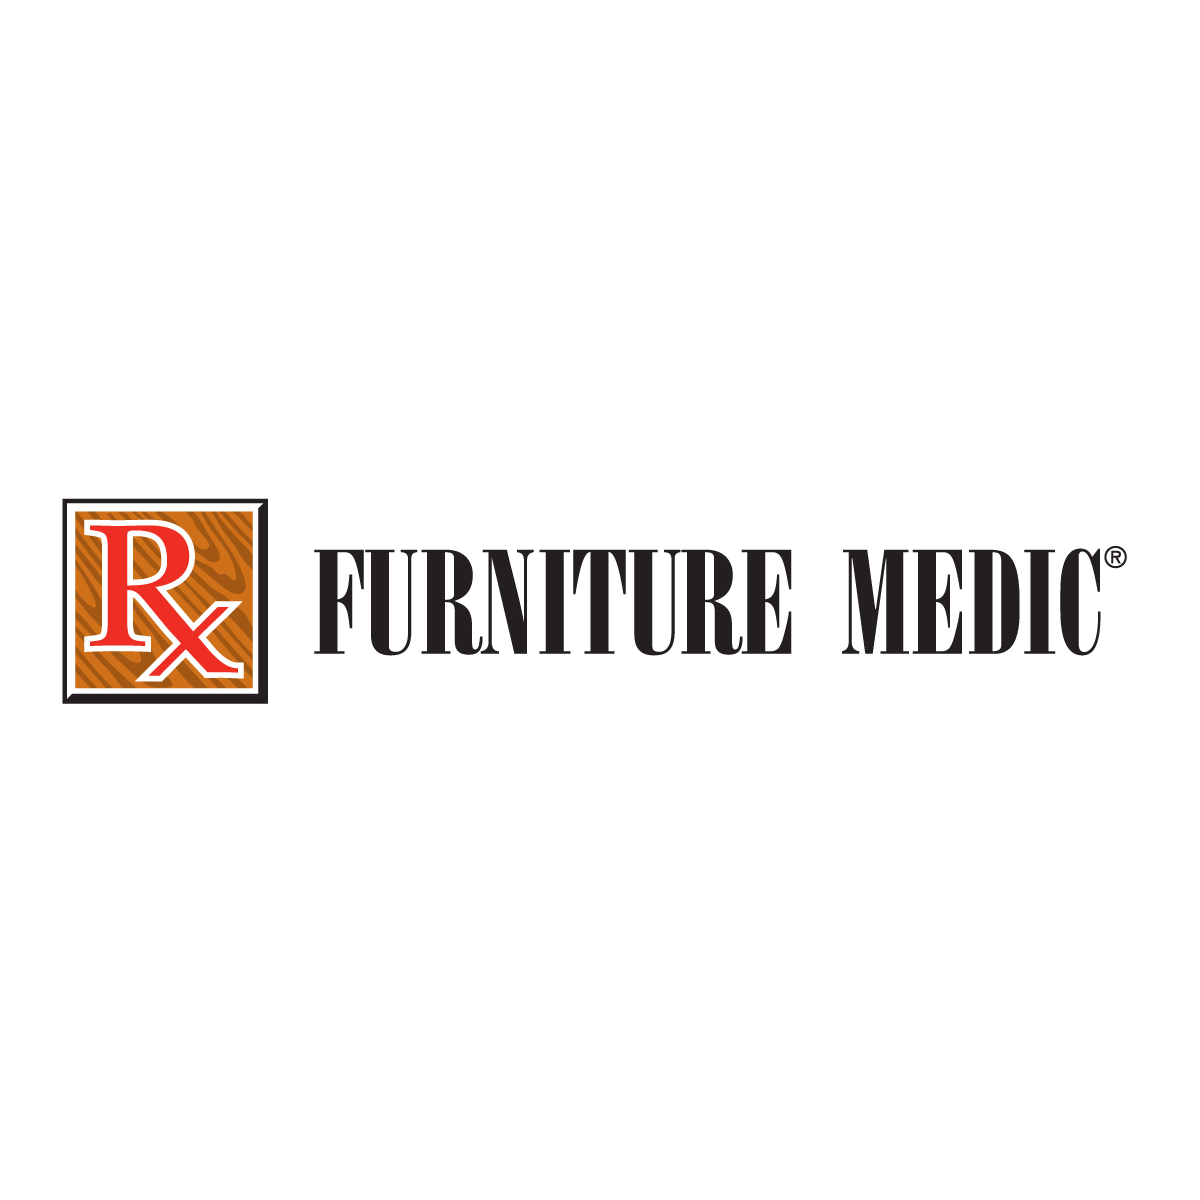 Furniture Medic By Finesse Finishes Closed Airmont New